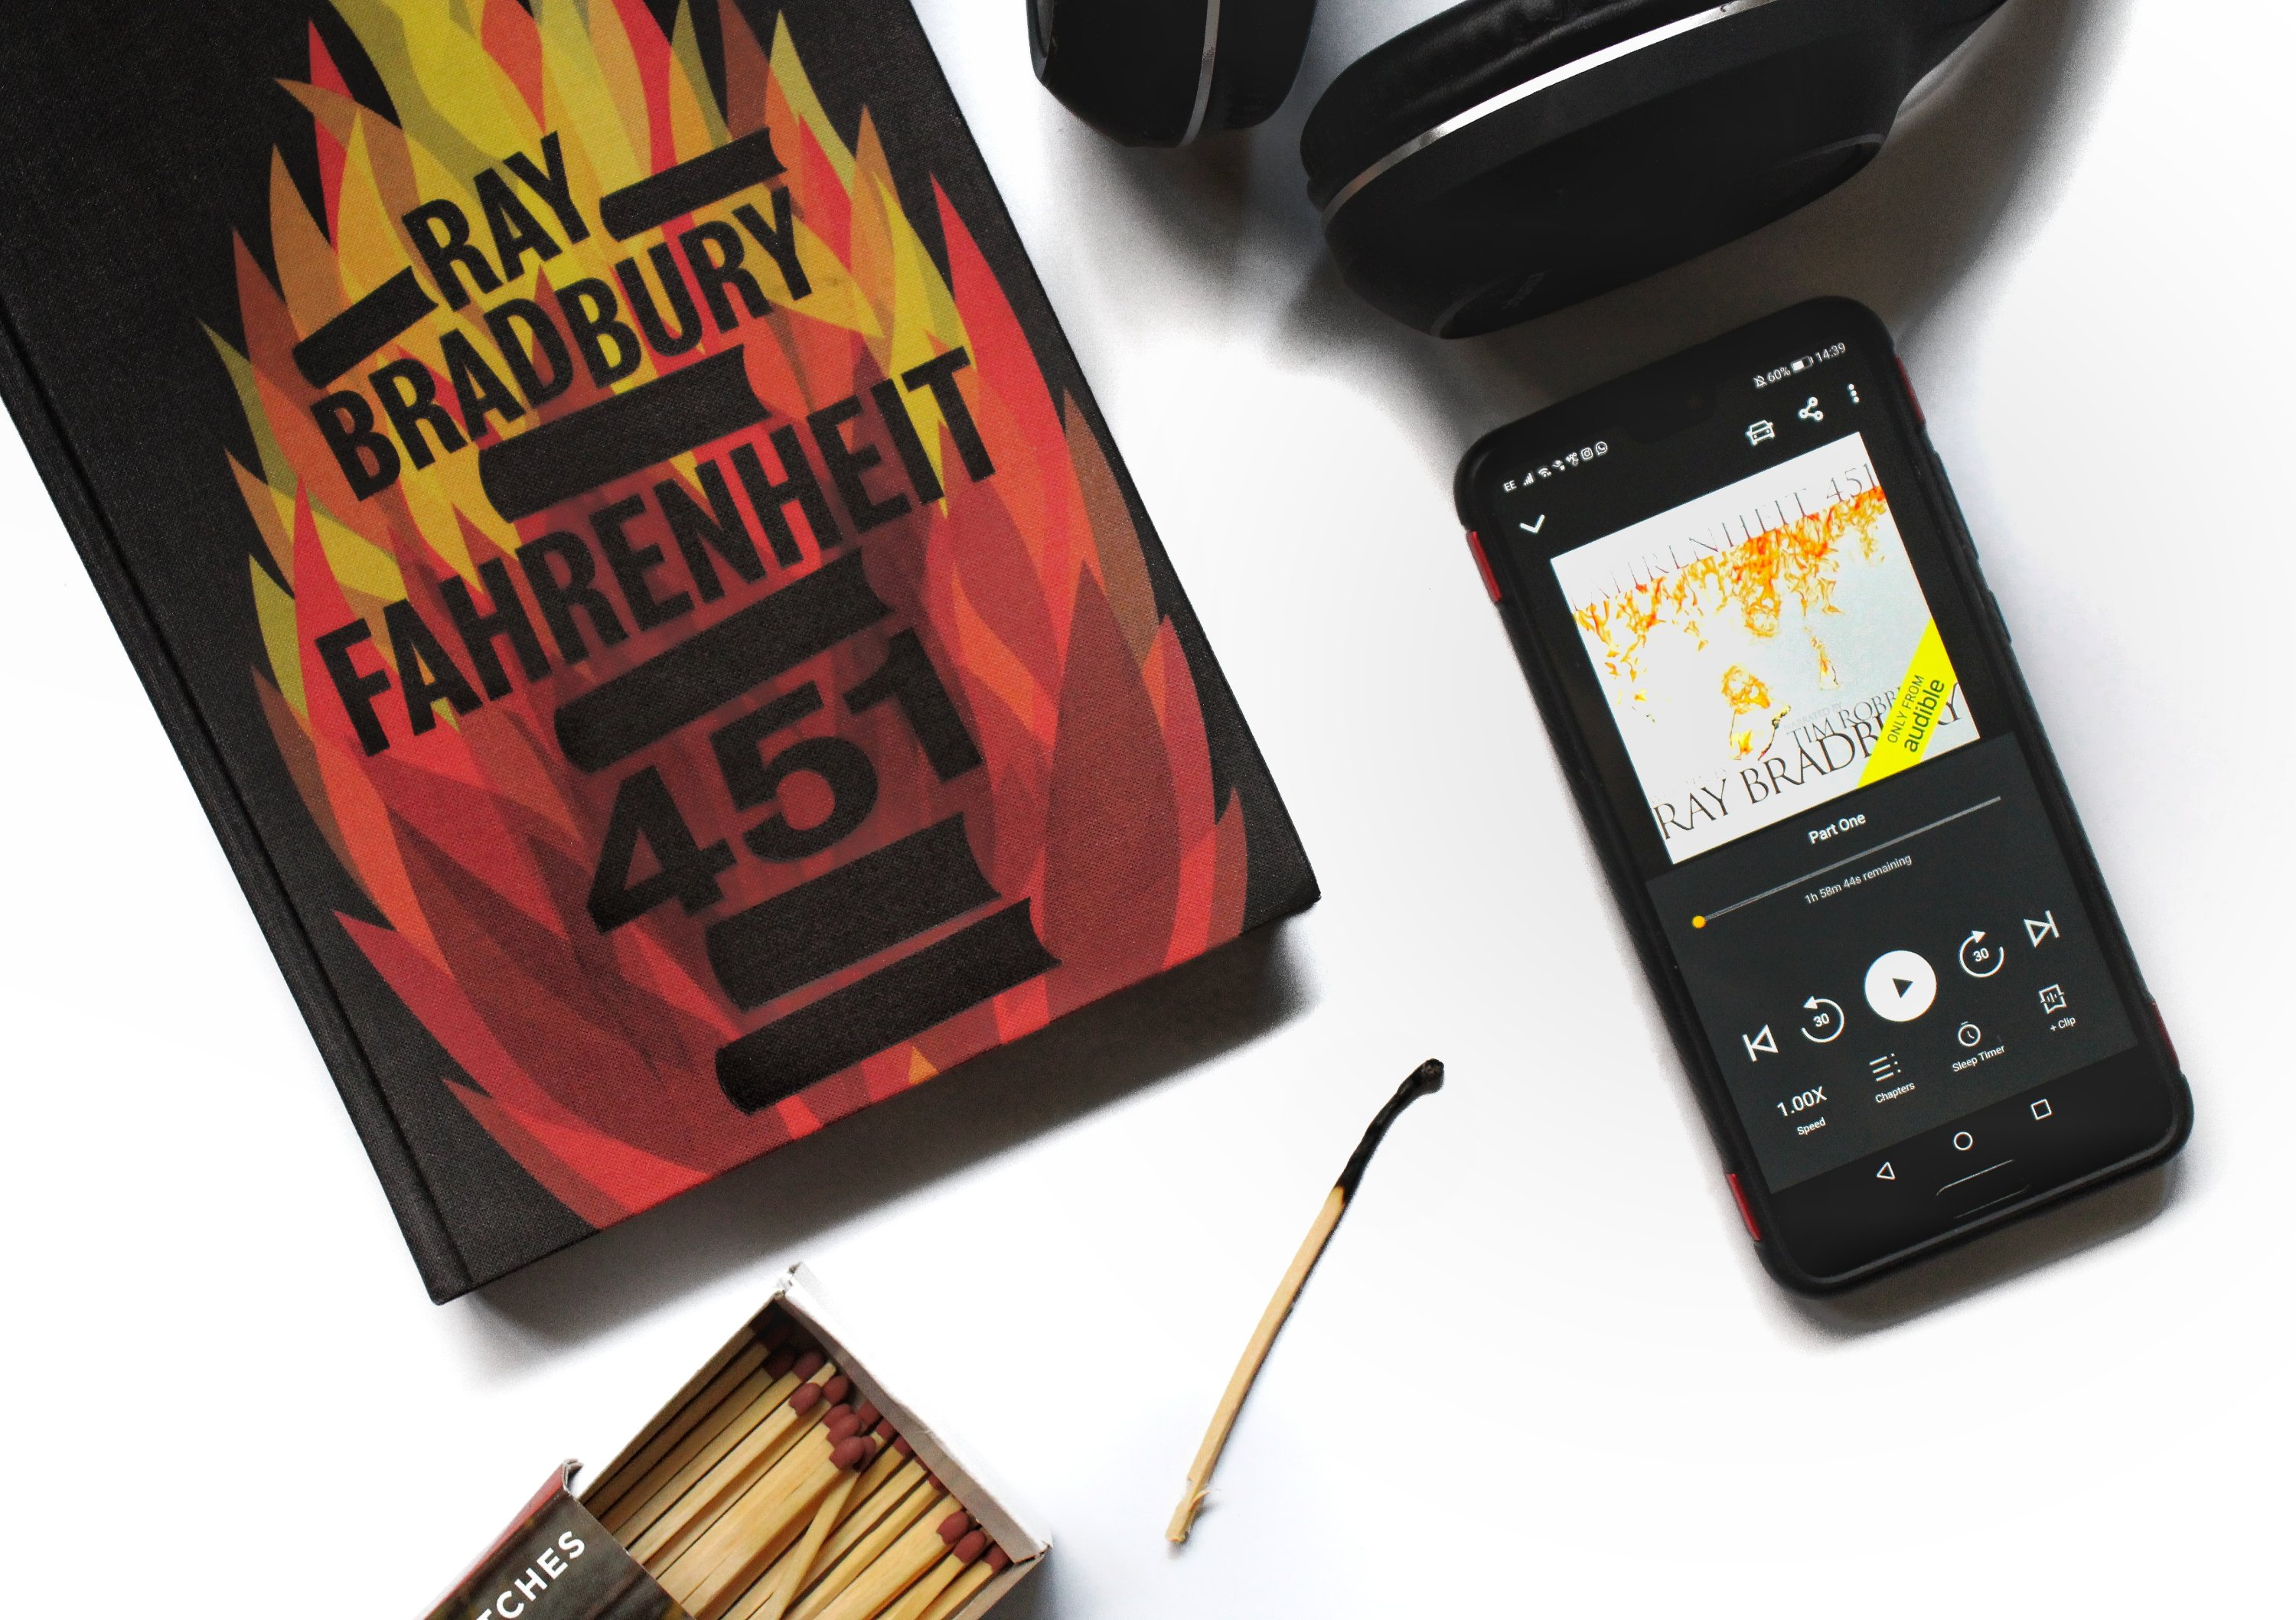 Audiobook of Fahrenheit 451 by Ray Bradbury